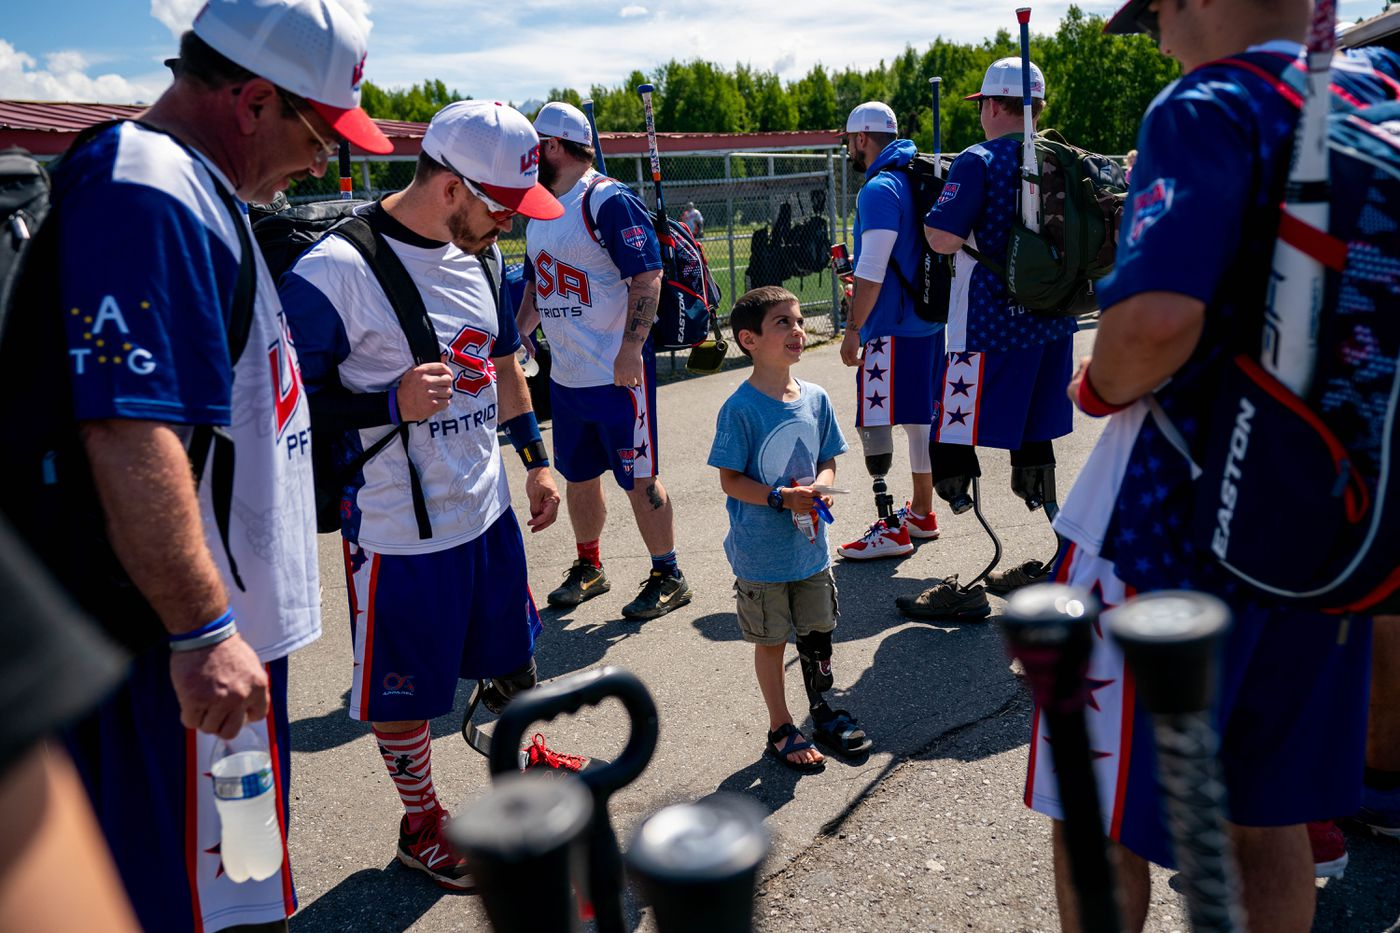 Six-year-old Justus Bohart of Seward, whose foot was amputated when he was 11 months old, talks with Patriots players Saturday at Cartee Fields 'He's just been dying to meet other amputees, ' said his mom, Rhonda Bohart. (Loren Holmes / ADN)